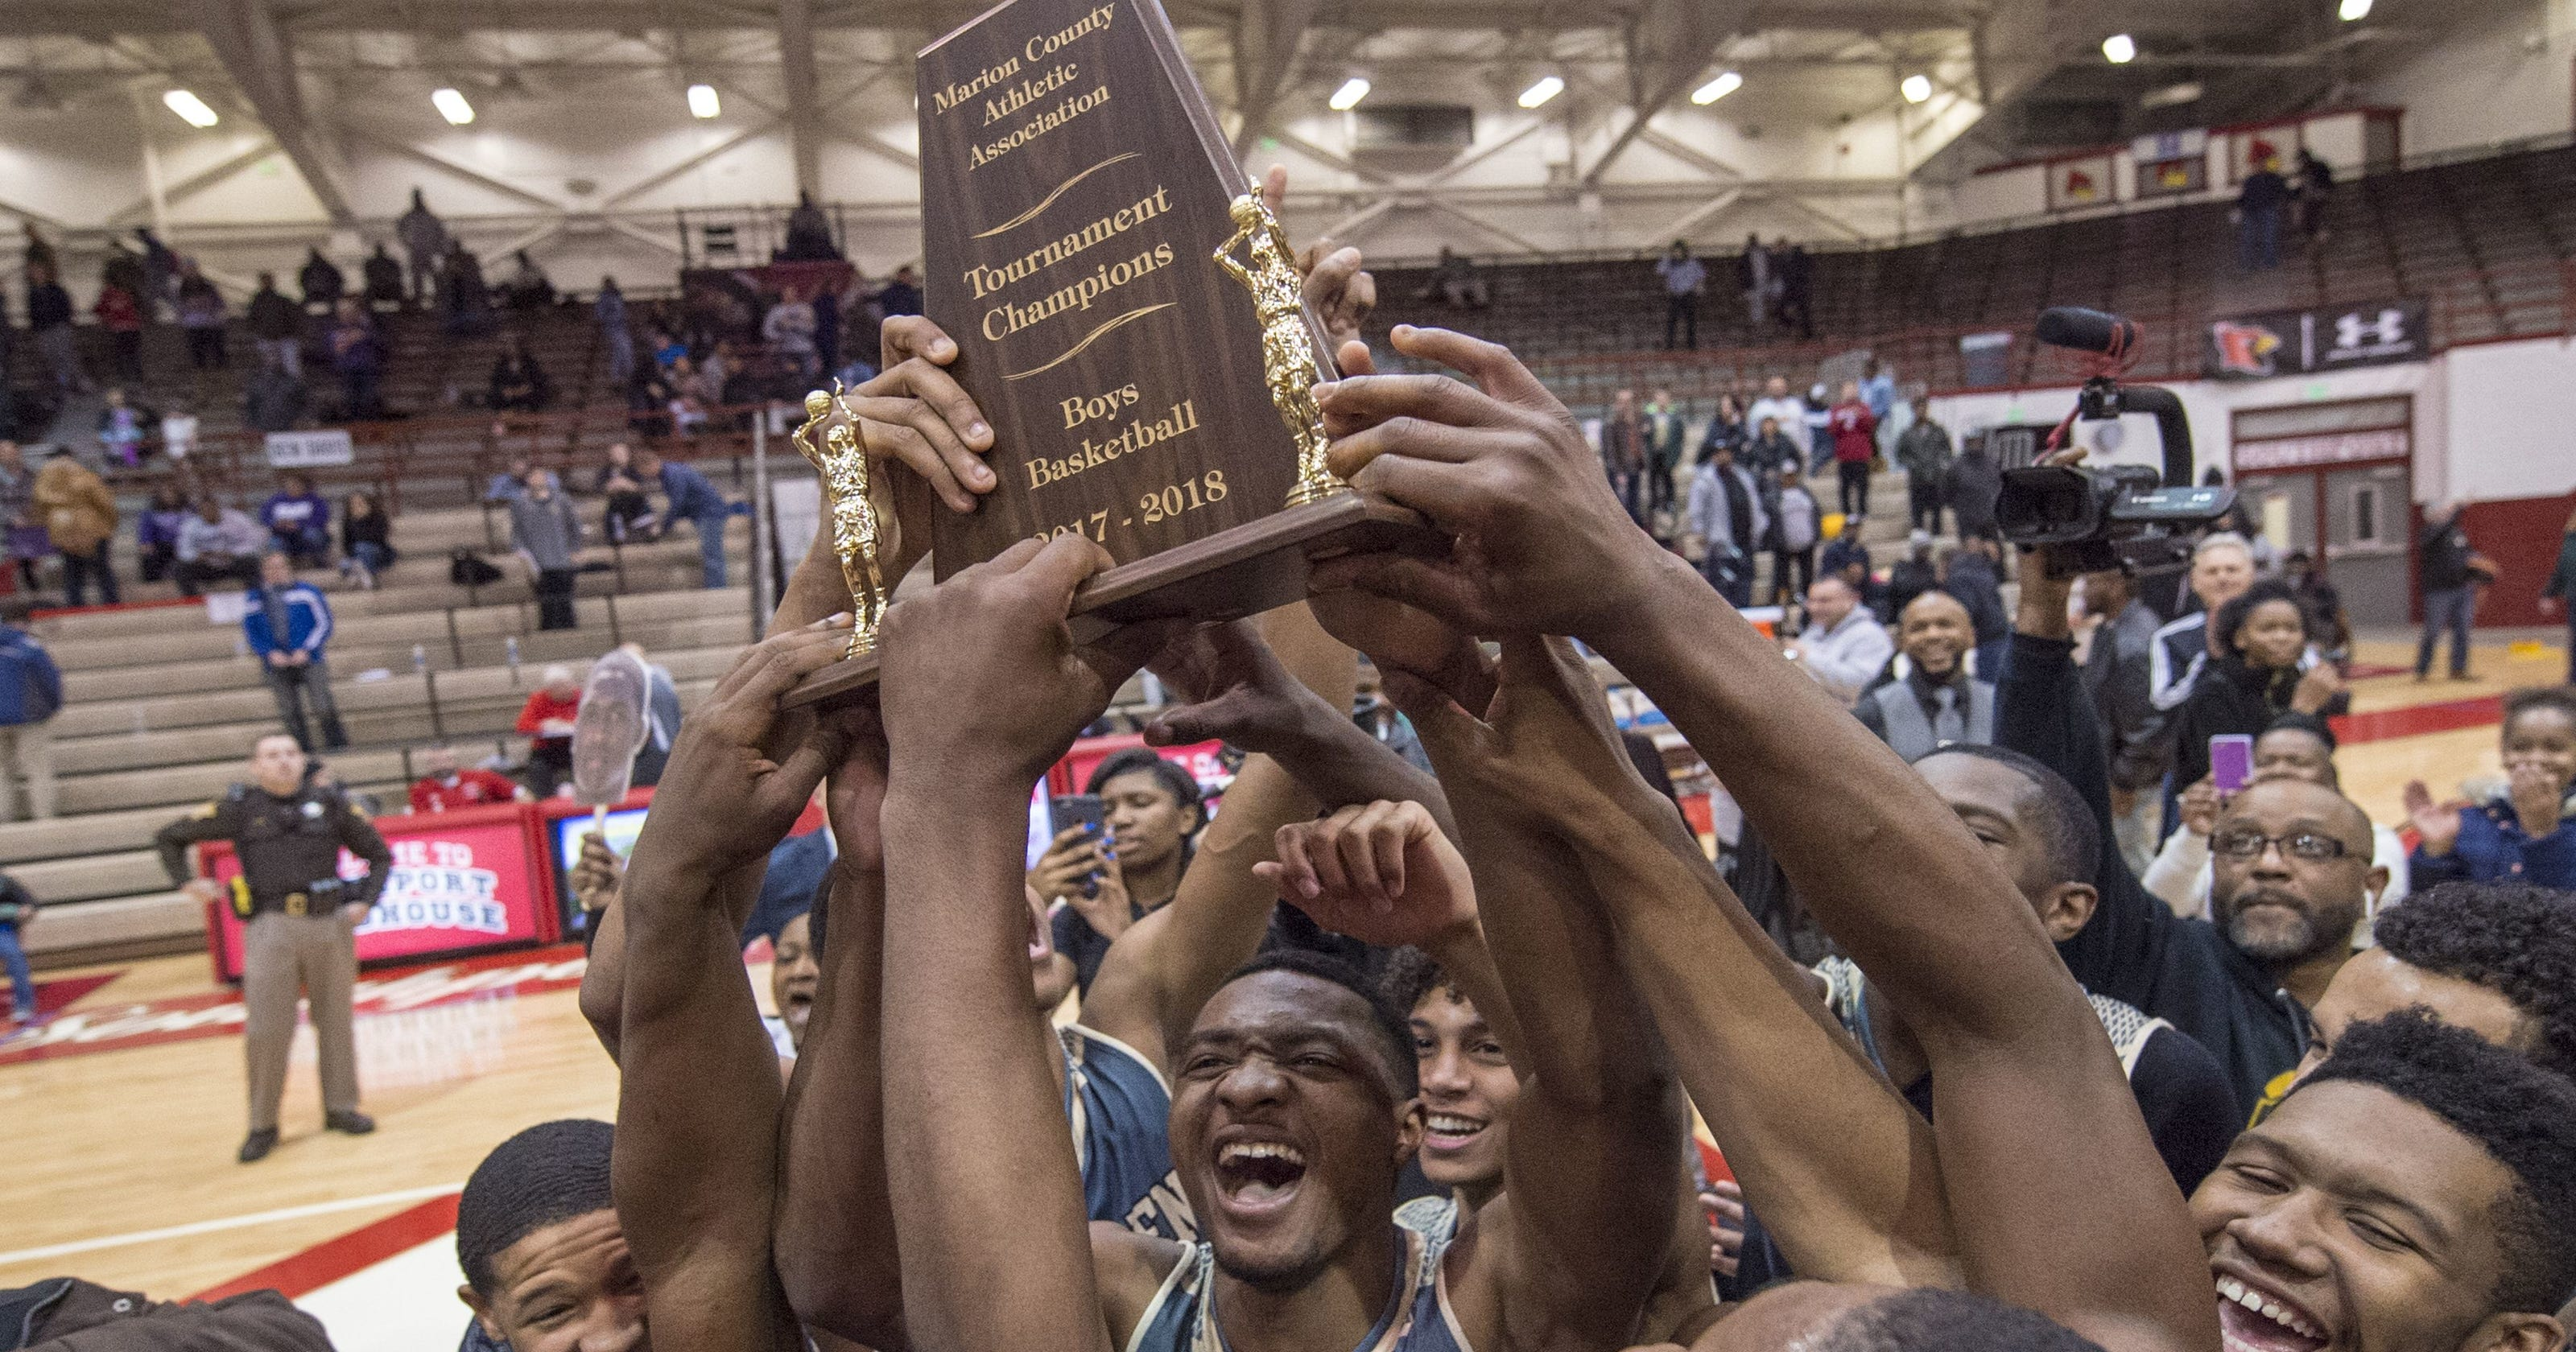 b64e0d499 10 storylines from IHSAA boys basketball sectional draw 2018